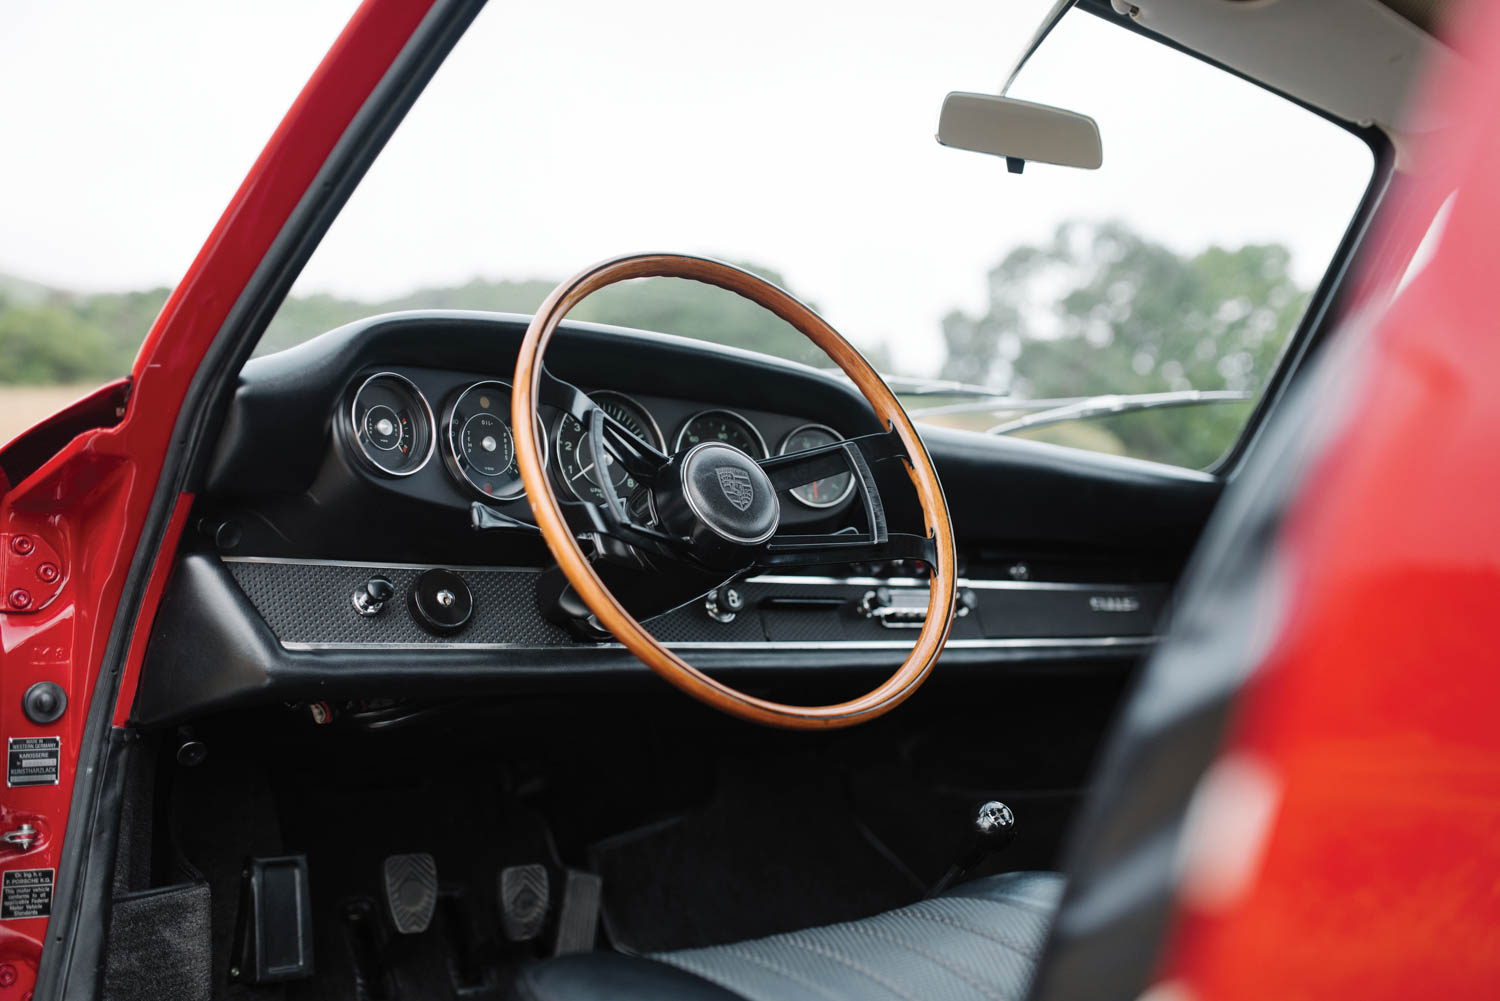 1967 Porsche 911 S Coupe interior